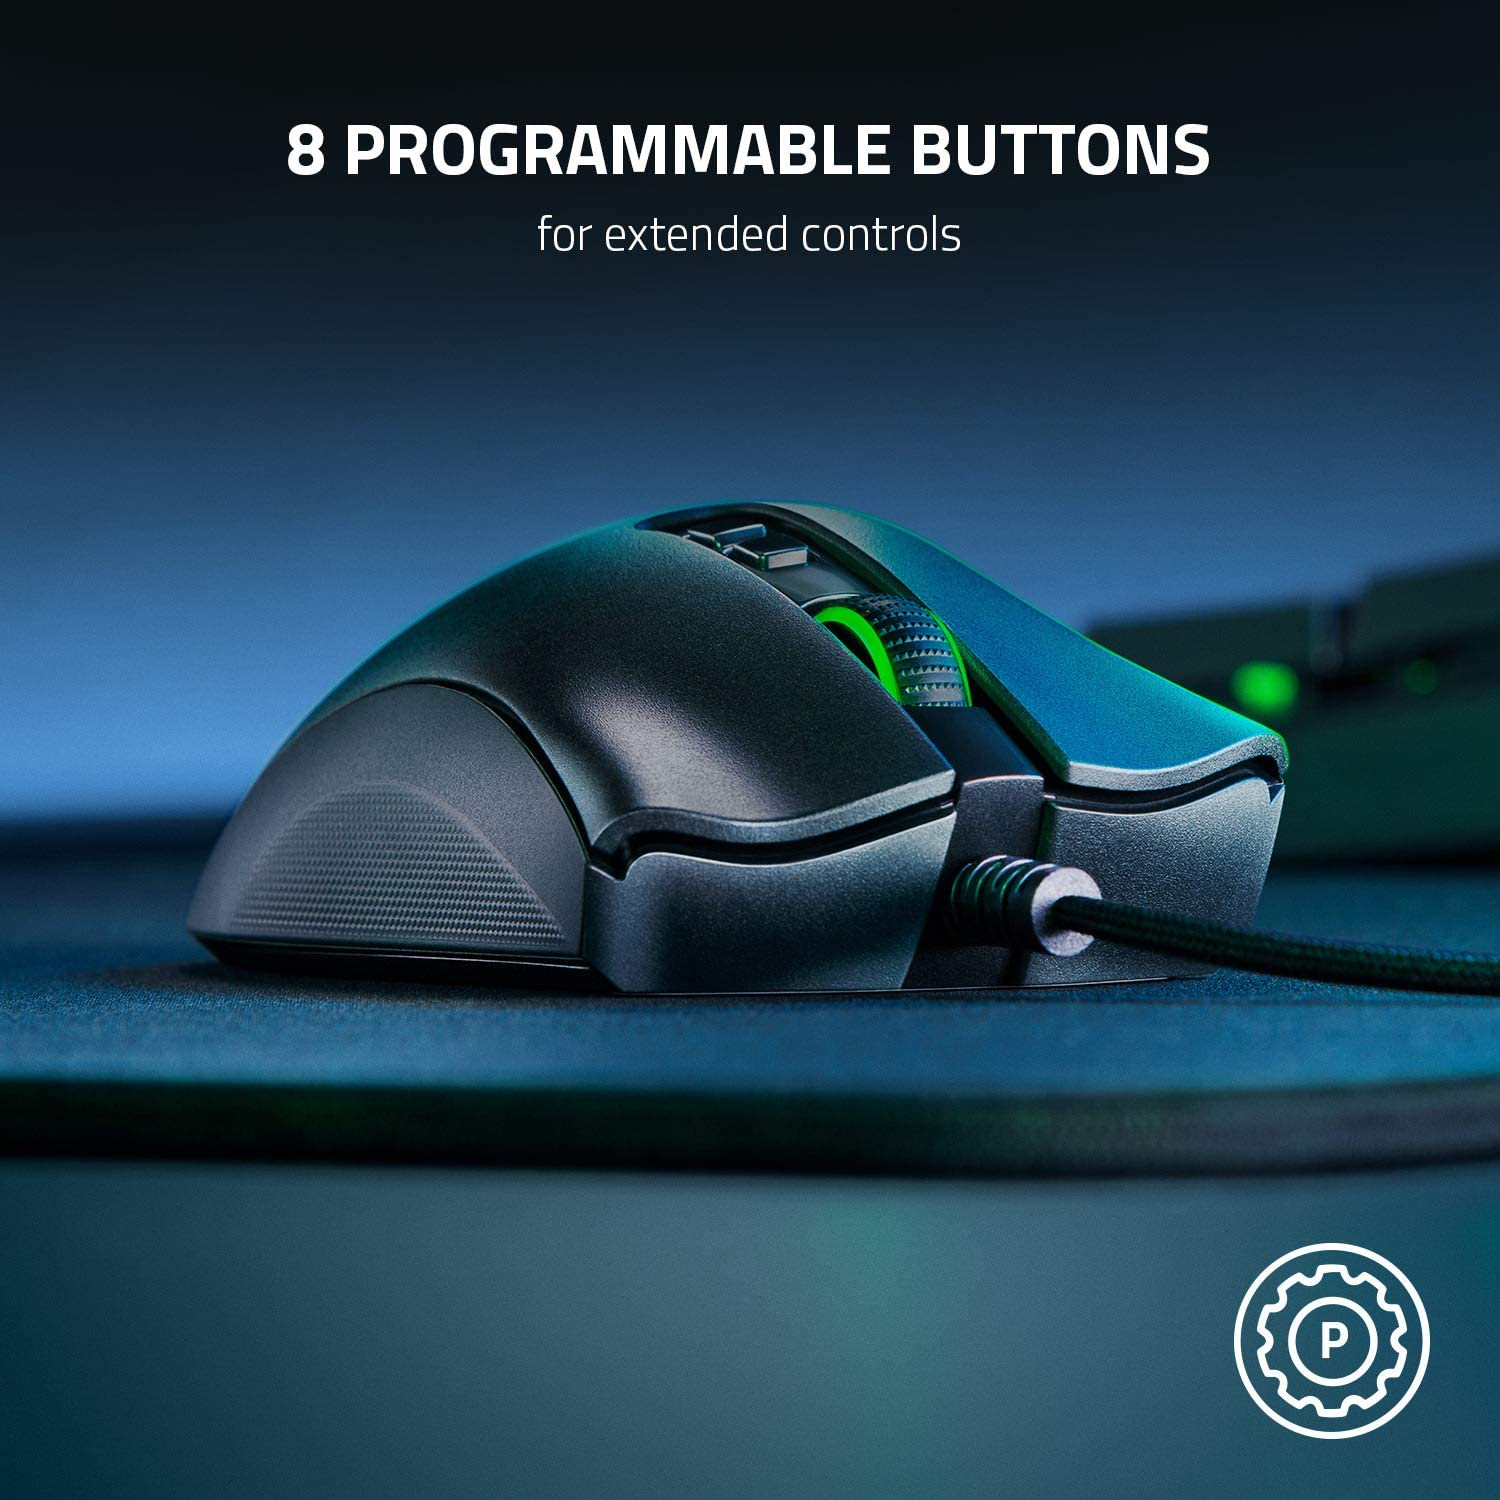 Razer DeathAdder V2 - Wired USB Gaming Mouse with Optical Mouse Switches, Focus+ 20K Optical Sensor, 8 Programmable Buttons and Best-in-class Ergonomics